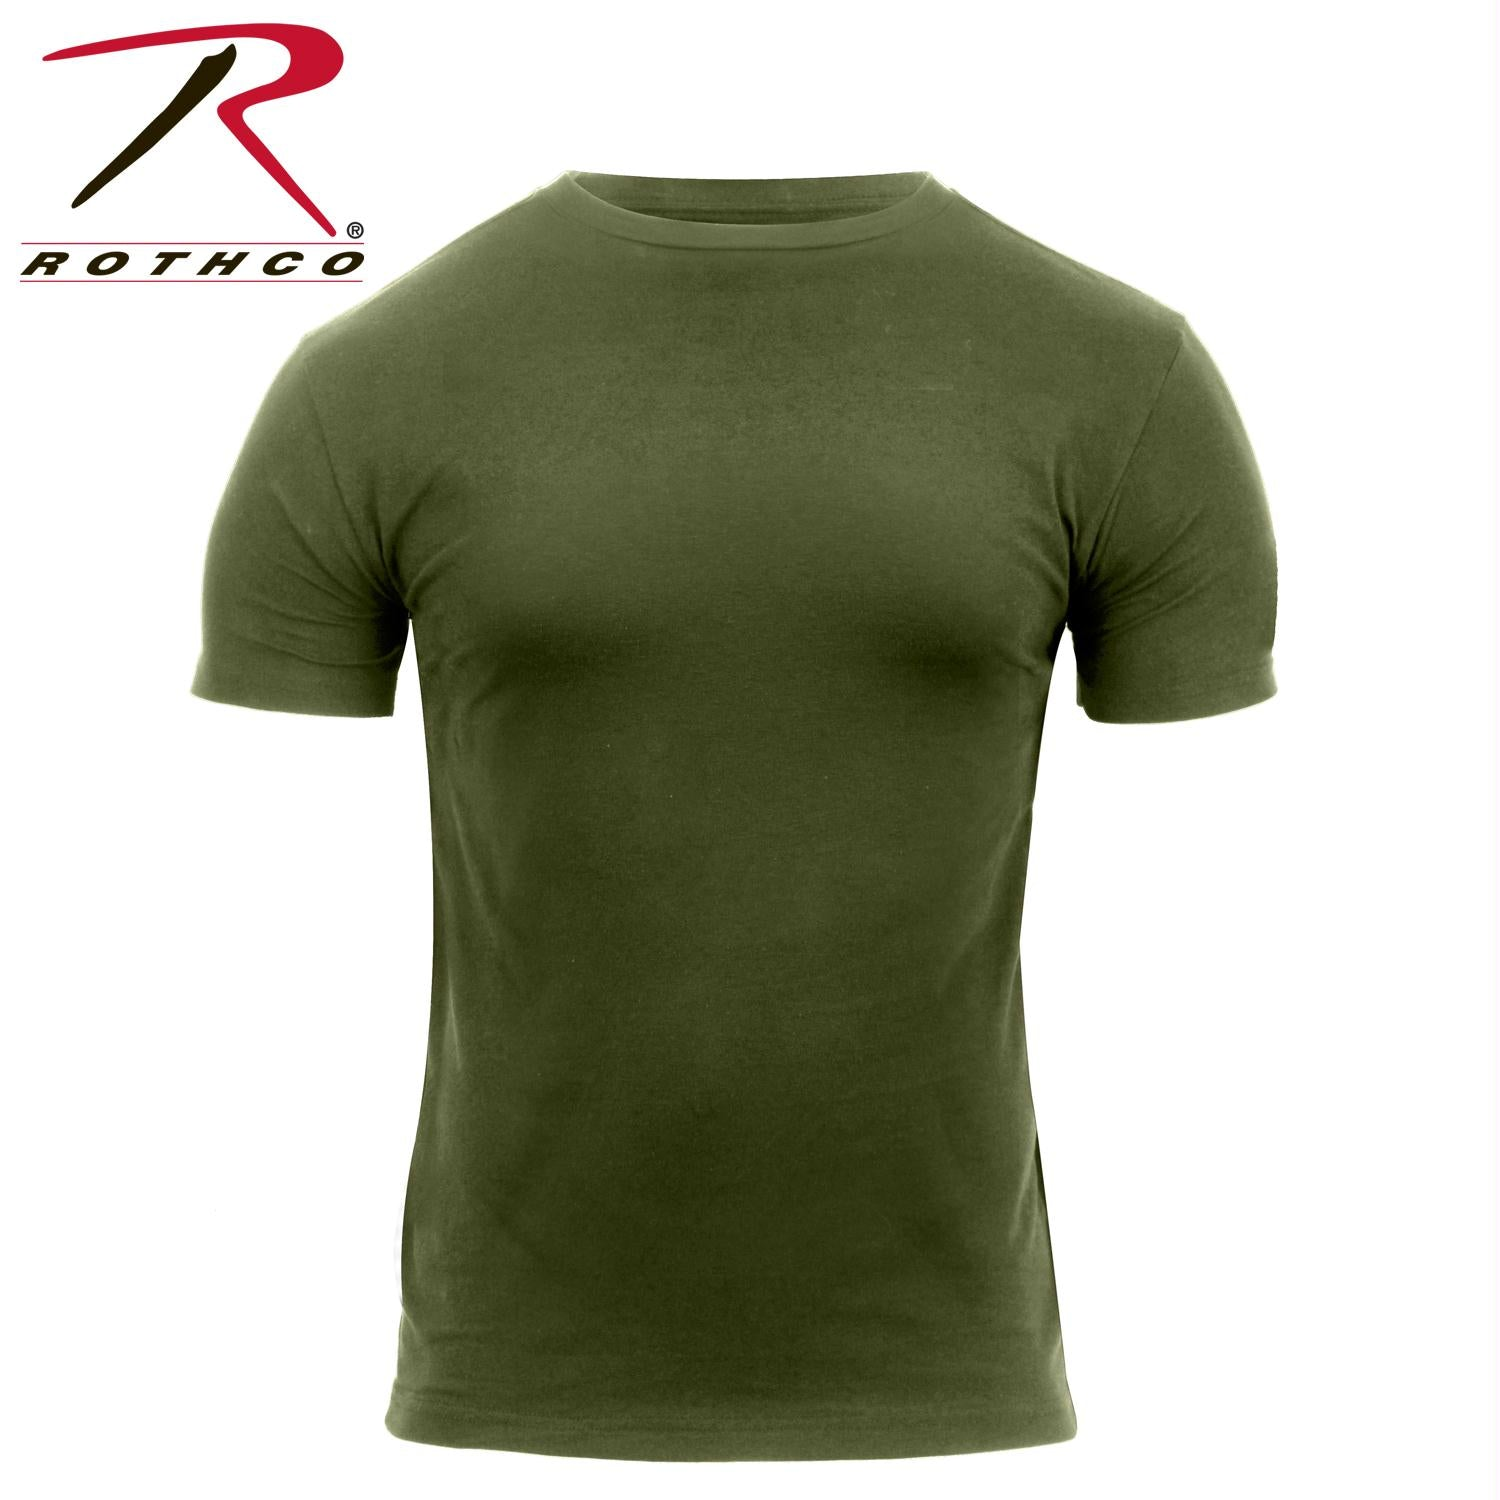 Rothco Quick Dry Moisture Wicking T-shirt - Olive Drab / S